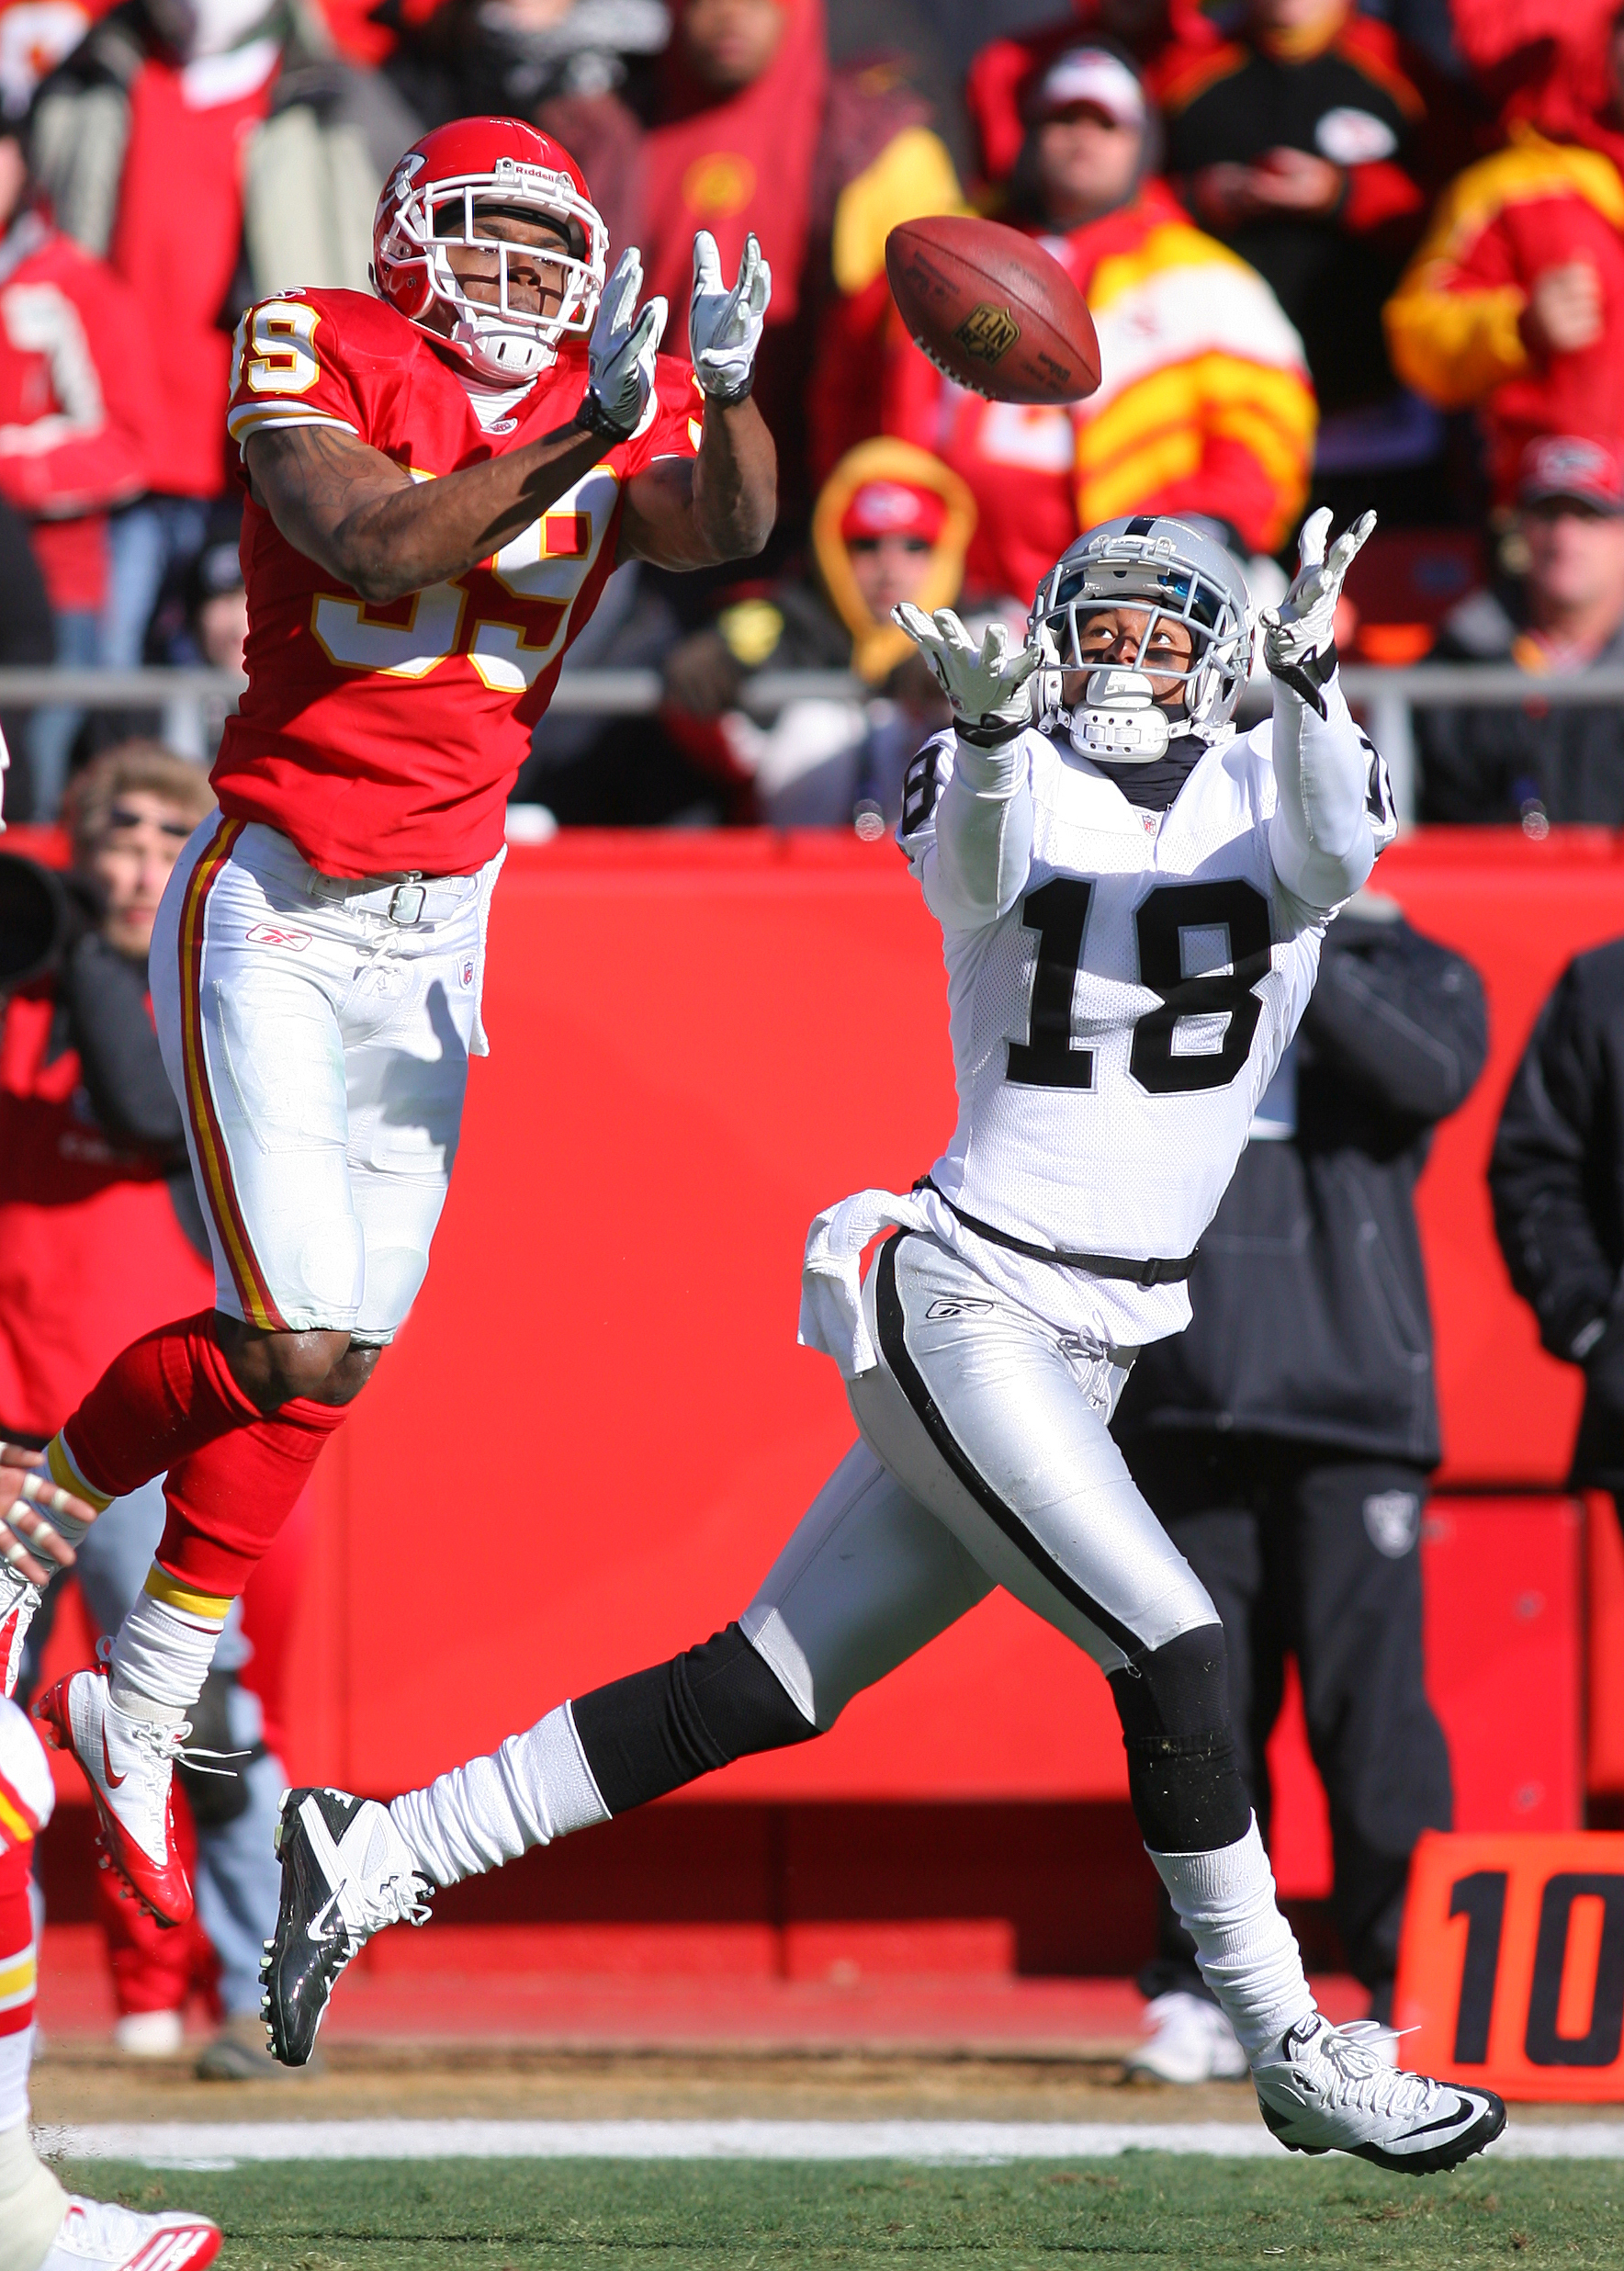 KANSAS CITY, MO - JANUARY 02:  Wide receiver Louis Murphy #18 of the Oakland Raiders catches a pass while defended by cornerback Brandon Carr #39 of the Kansas City Chiefs in a game at Arrowhead Stadium on January 2, 2011 in Kansas City, Missouri.  (Photo